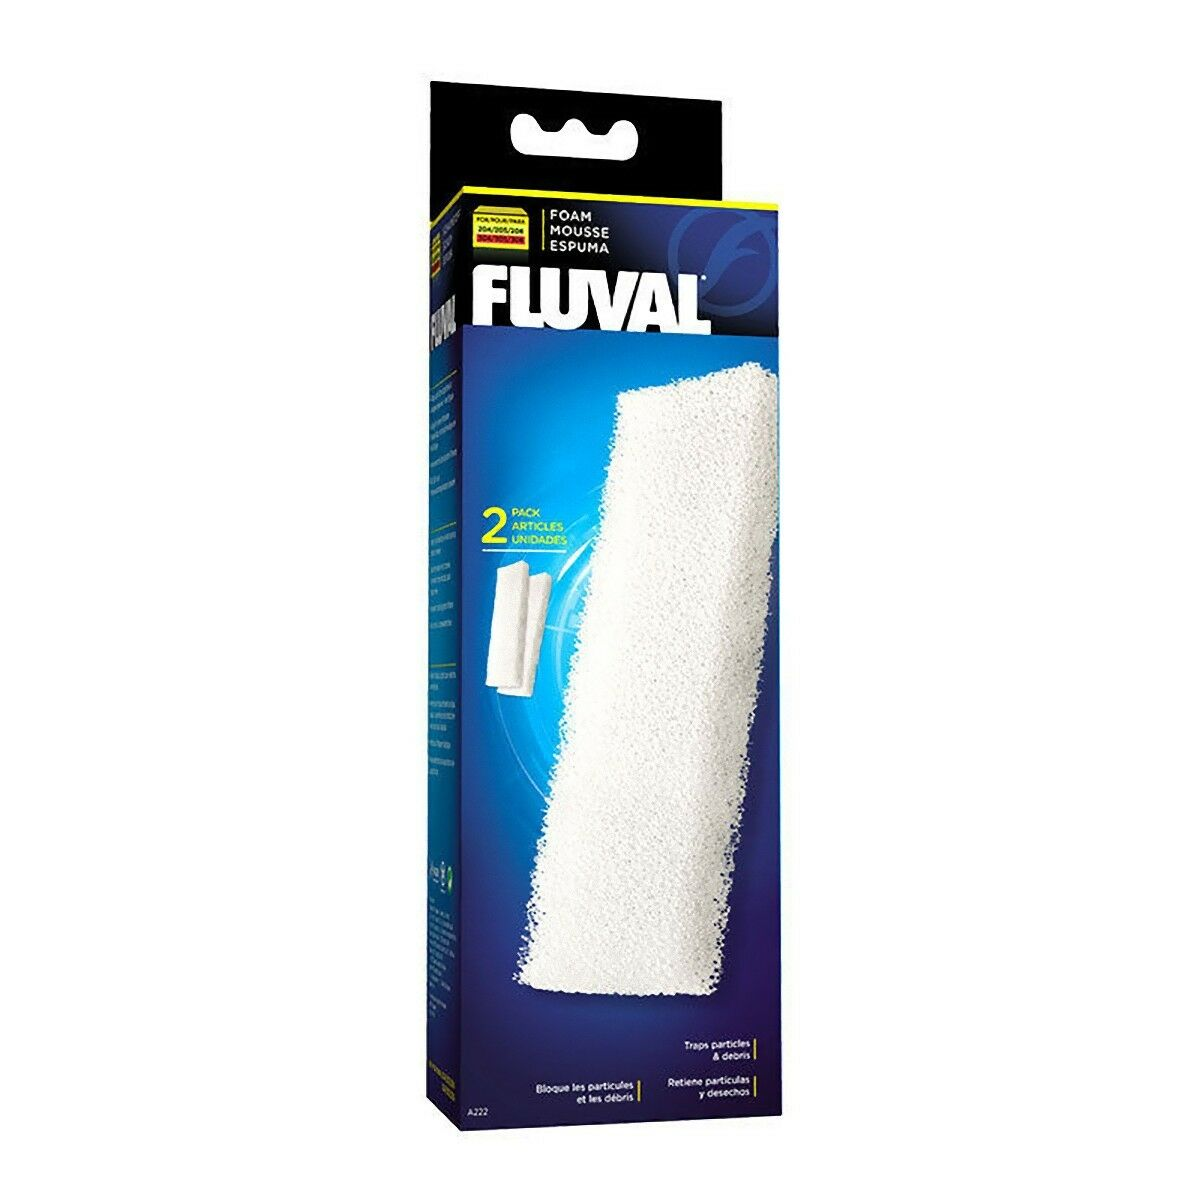 Fluval 204 205 206 304 305 306 Foam Pad Pack of 2 Genuine Replacement Pads